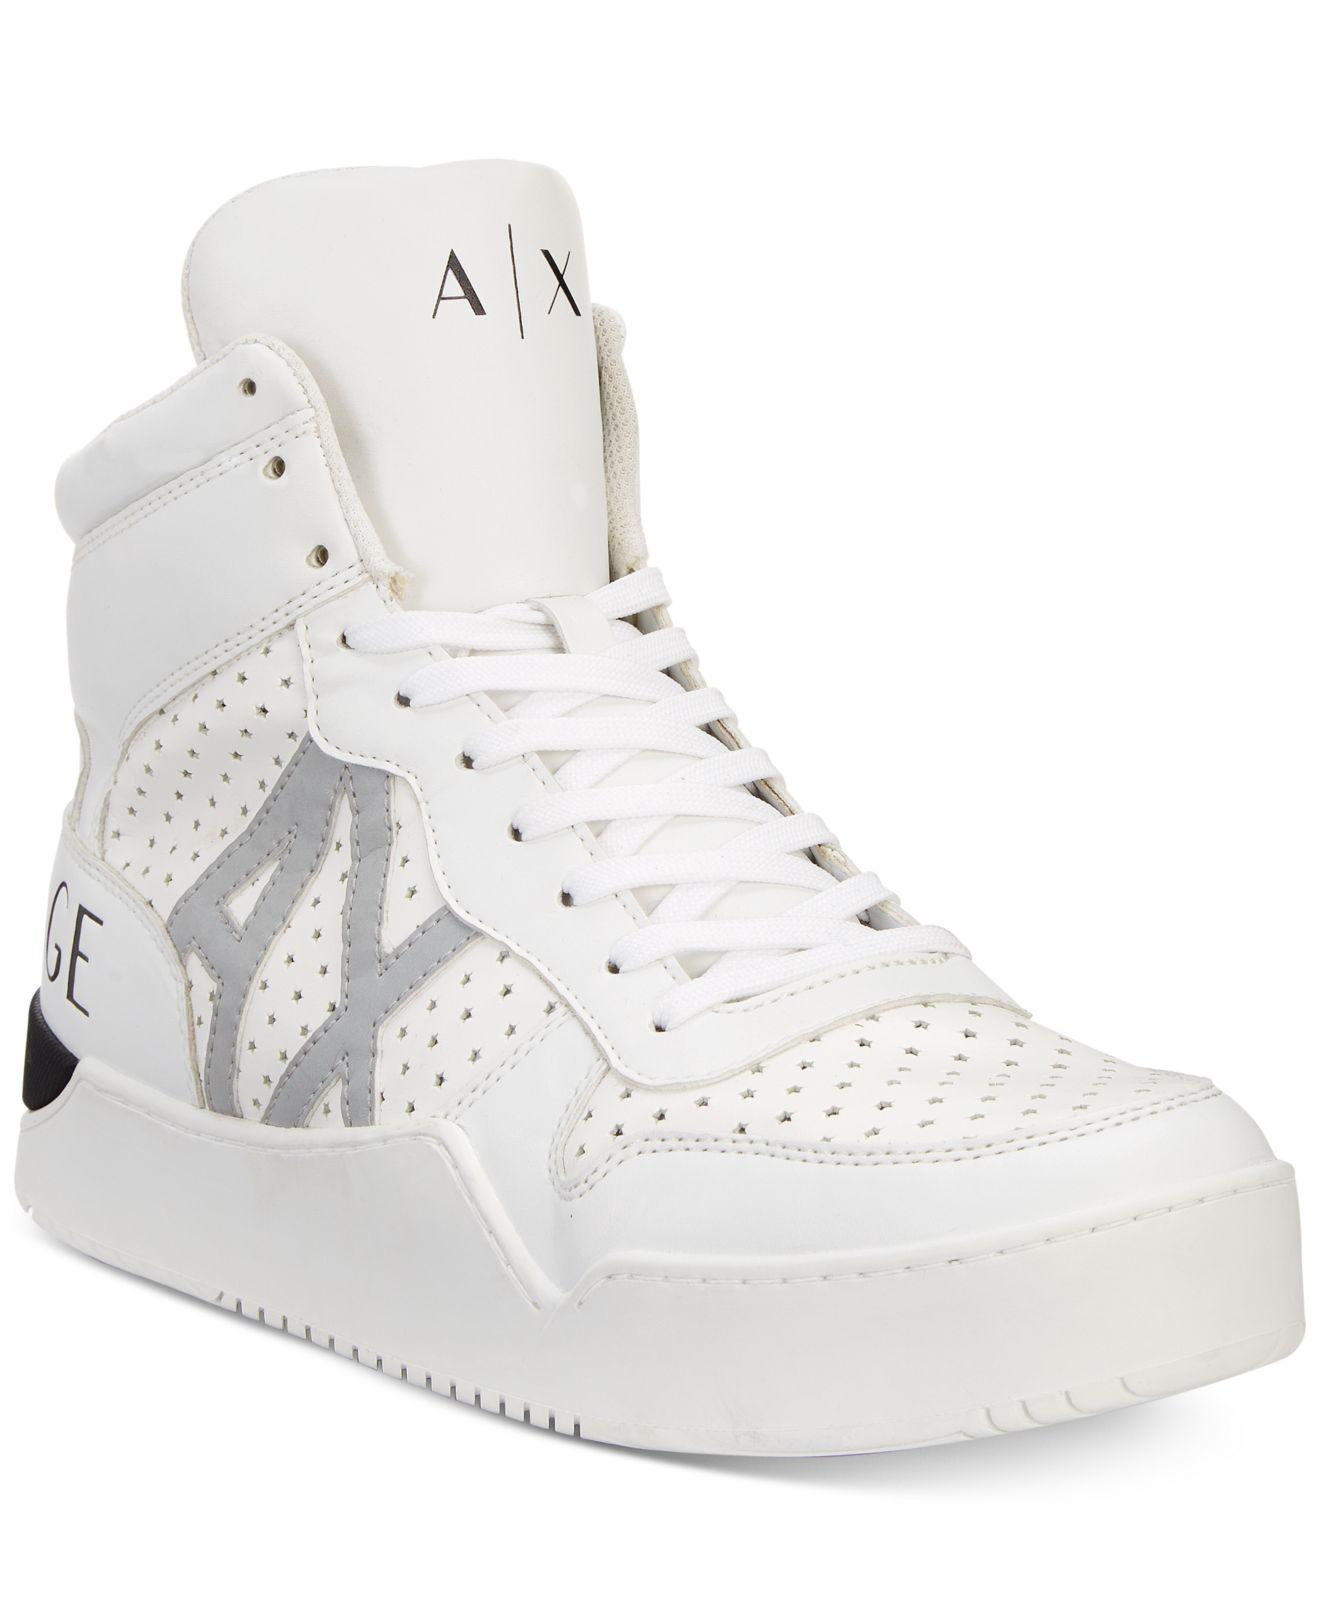 Lyst - Armani Exchange Logo High-top Perforated Sneakers in White ... 0b661ba087e